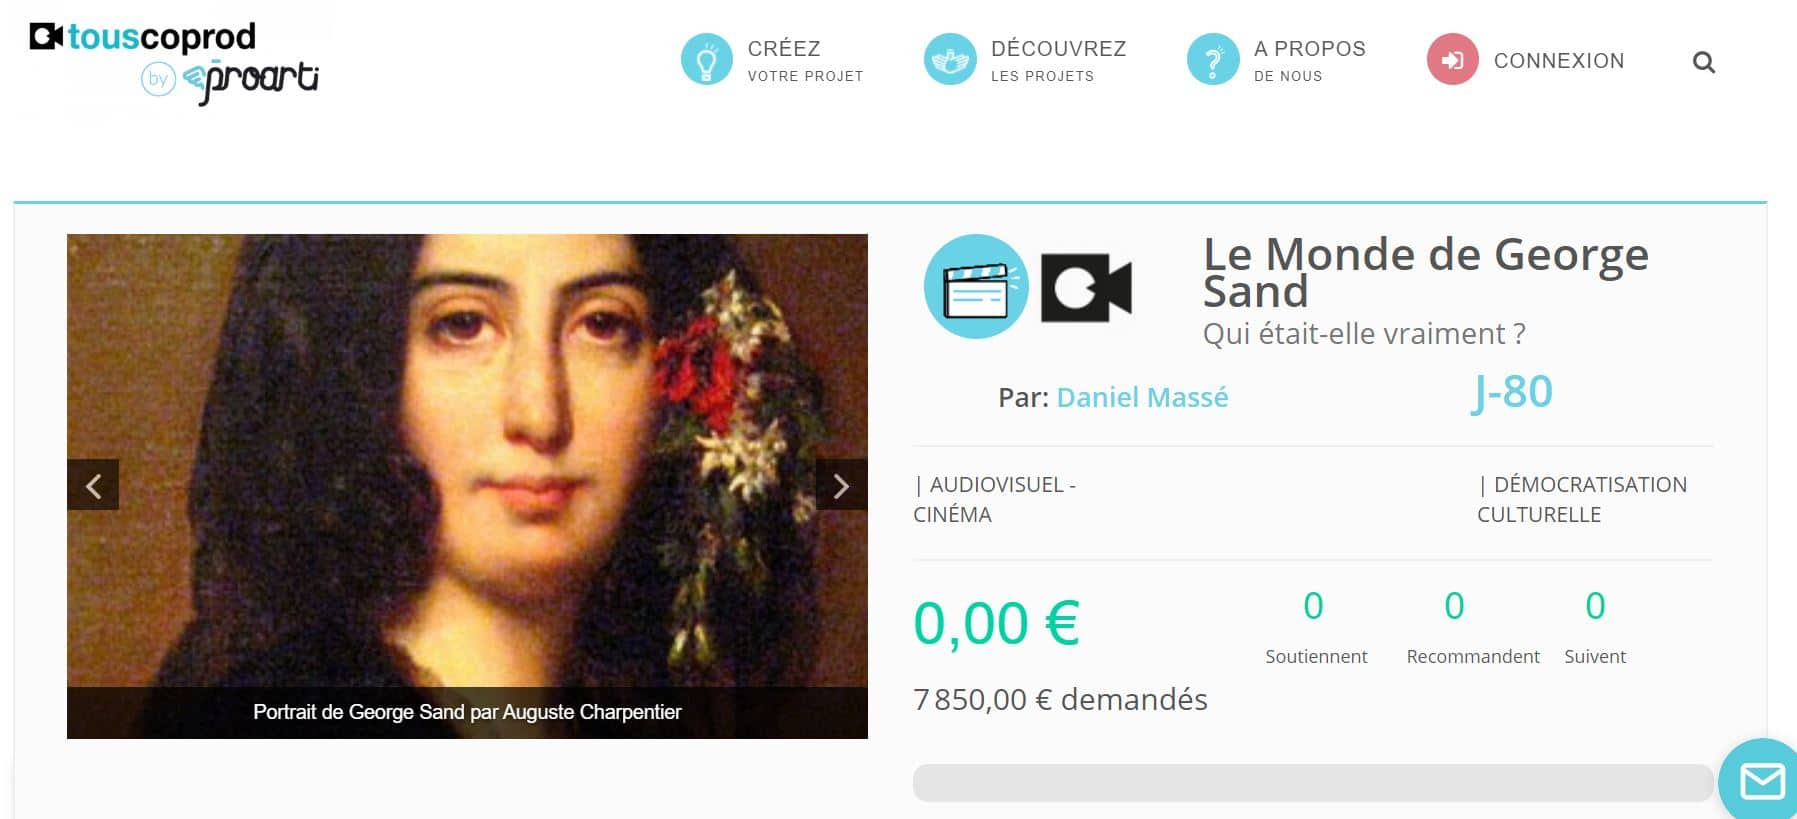 Un documentaire sur George Sand